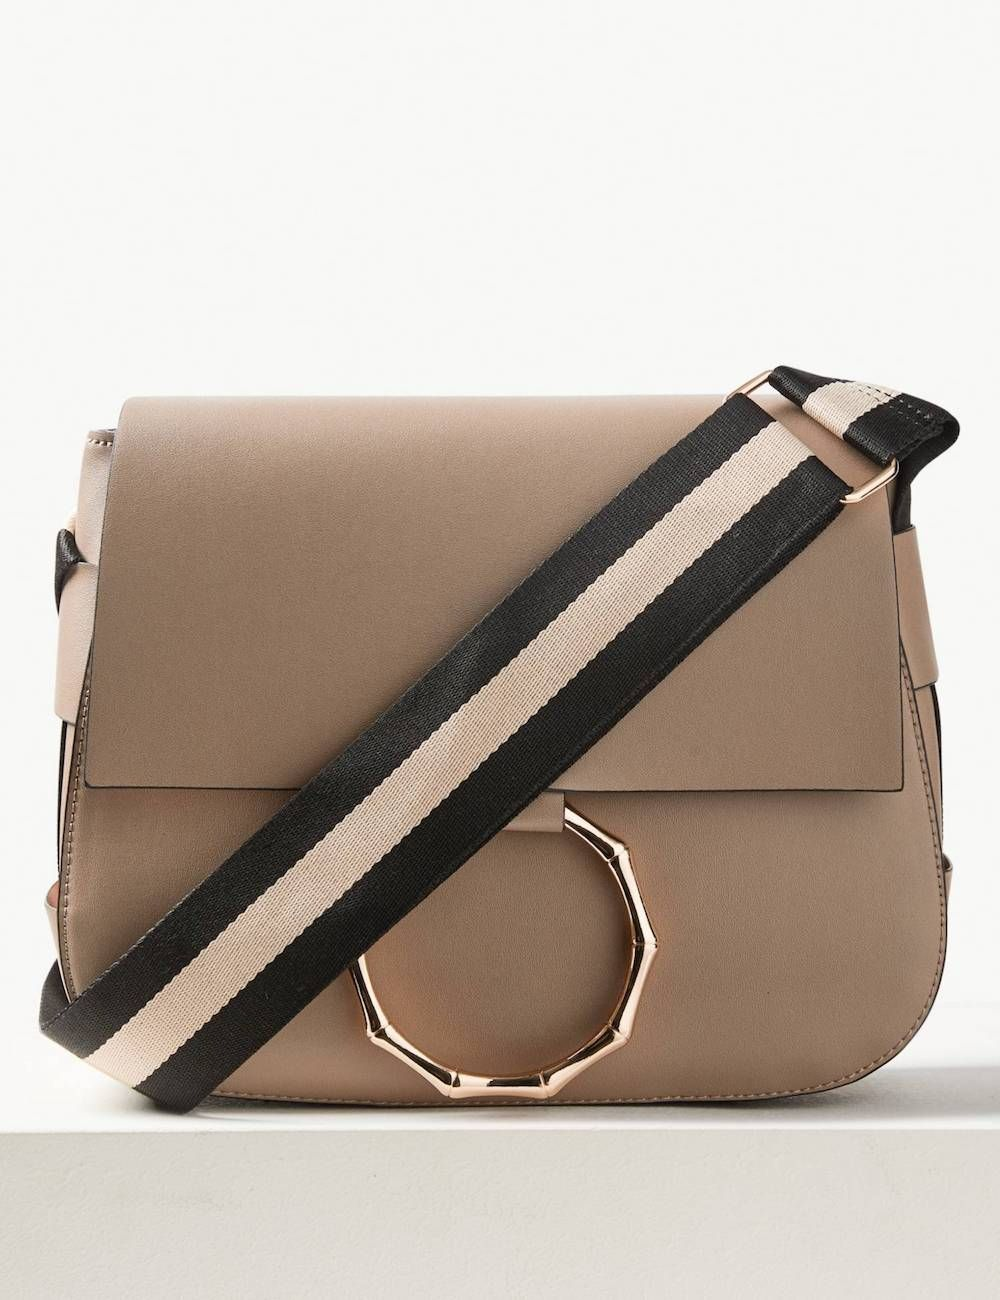 M&S Faux Leather Bamboo Saddle Cross Body Bag